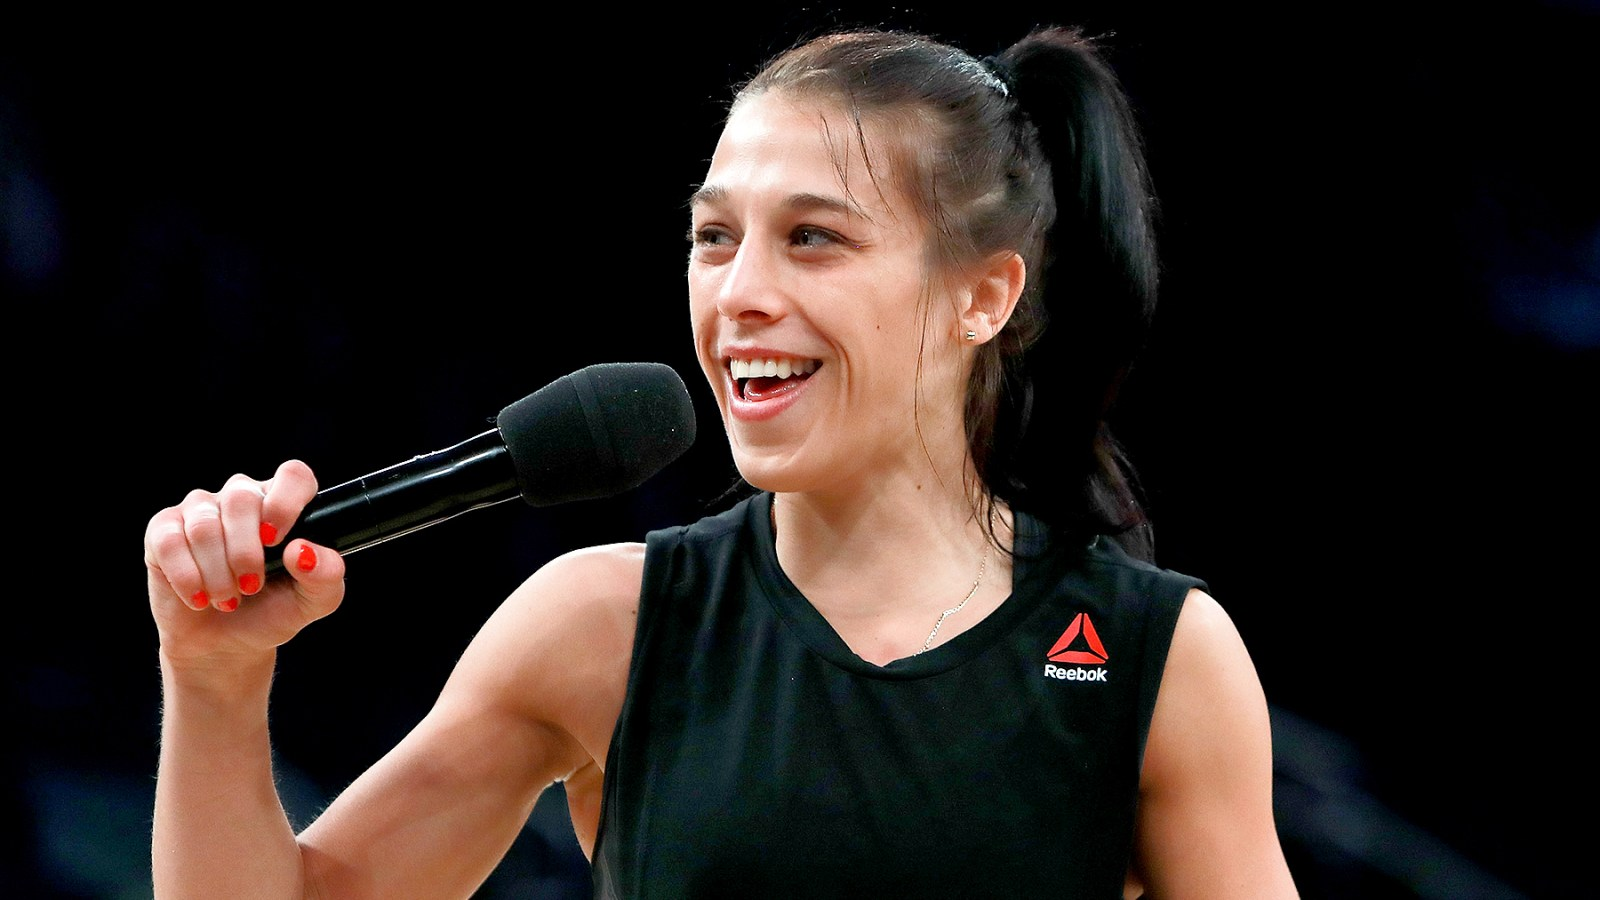 Joanna jedrzejczyk dating history